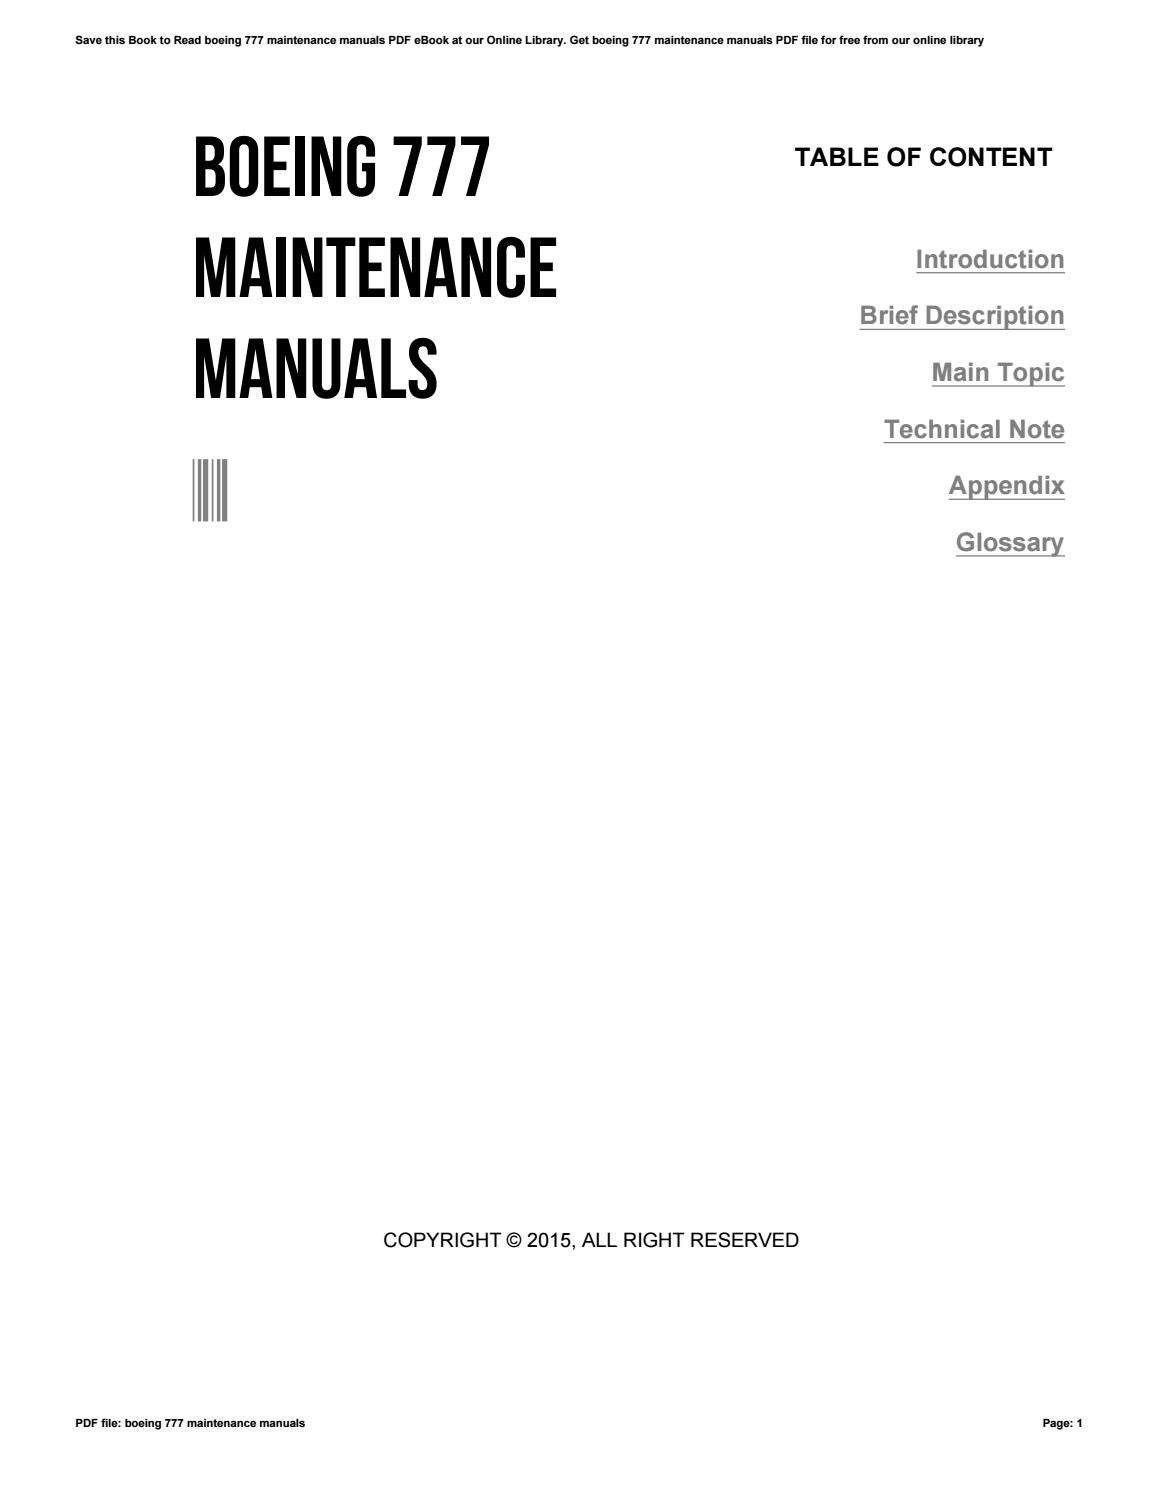 maintenance manual for a boeing 777